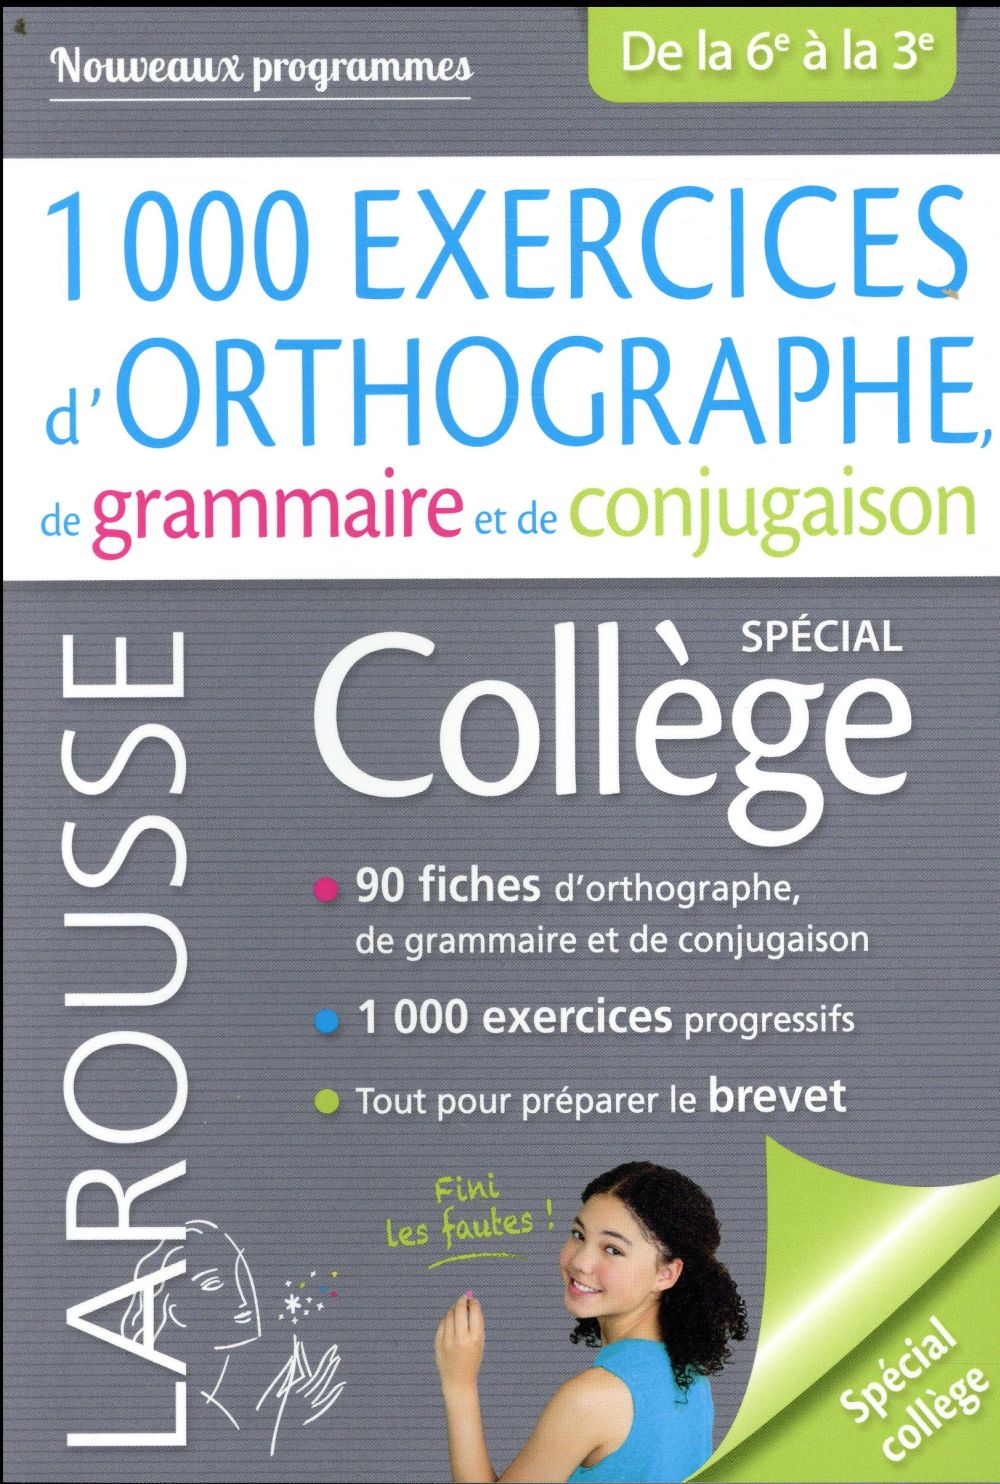 1000 EXERCICES D'ORTHOGRAPHE, SPECIAL COLLEGE BERLION DANIEL LAROUSSE